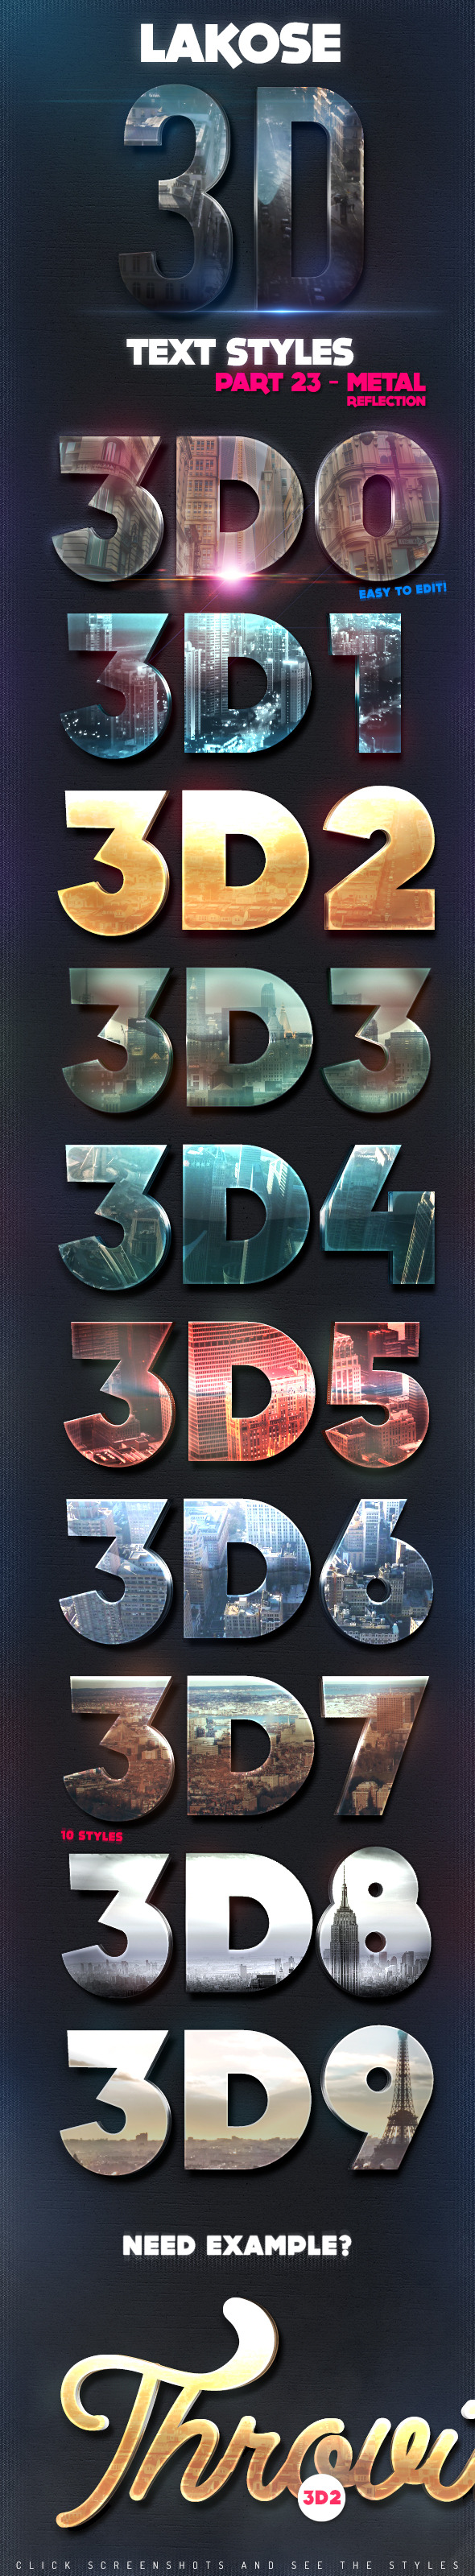 Lakose 3D Text Styles Part 23 - Text Effects Styles